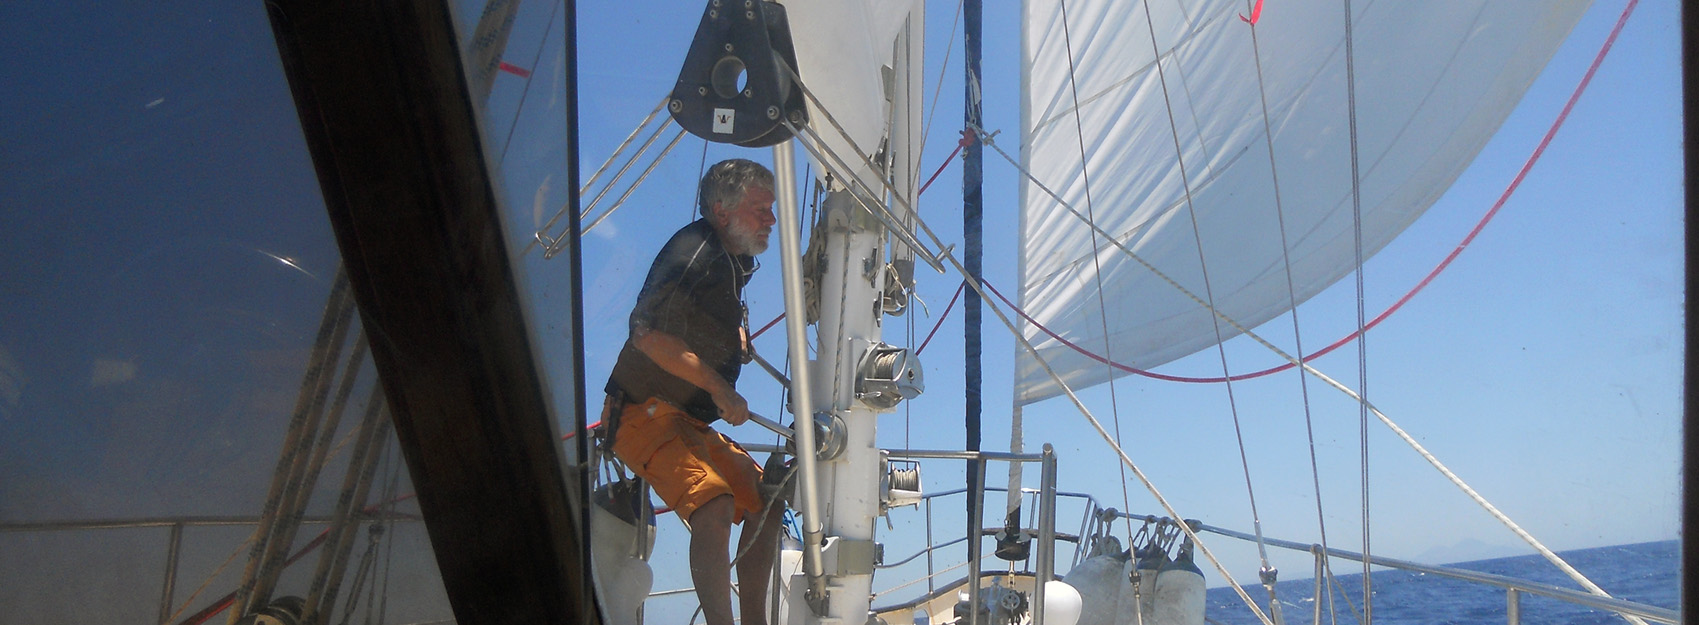 Reefing the main sail is easy with in-boom roling main